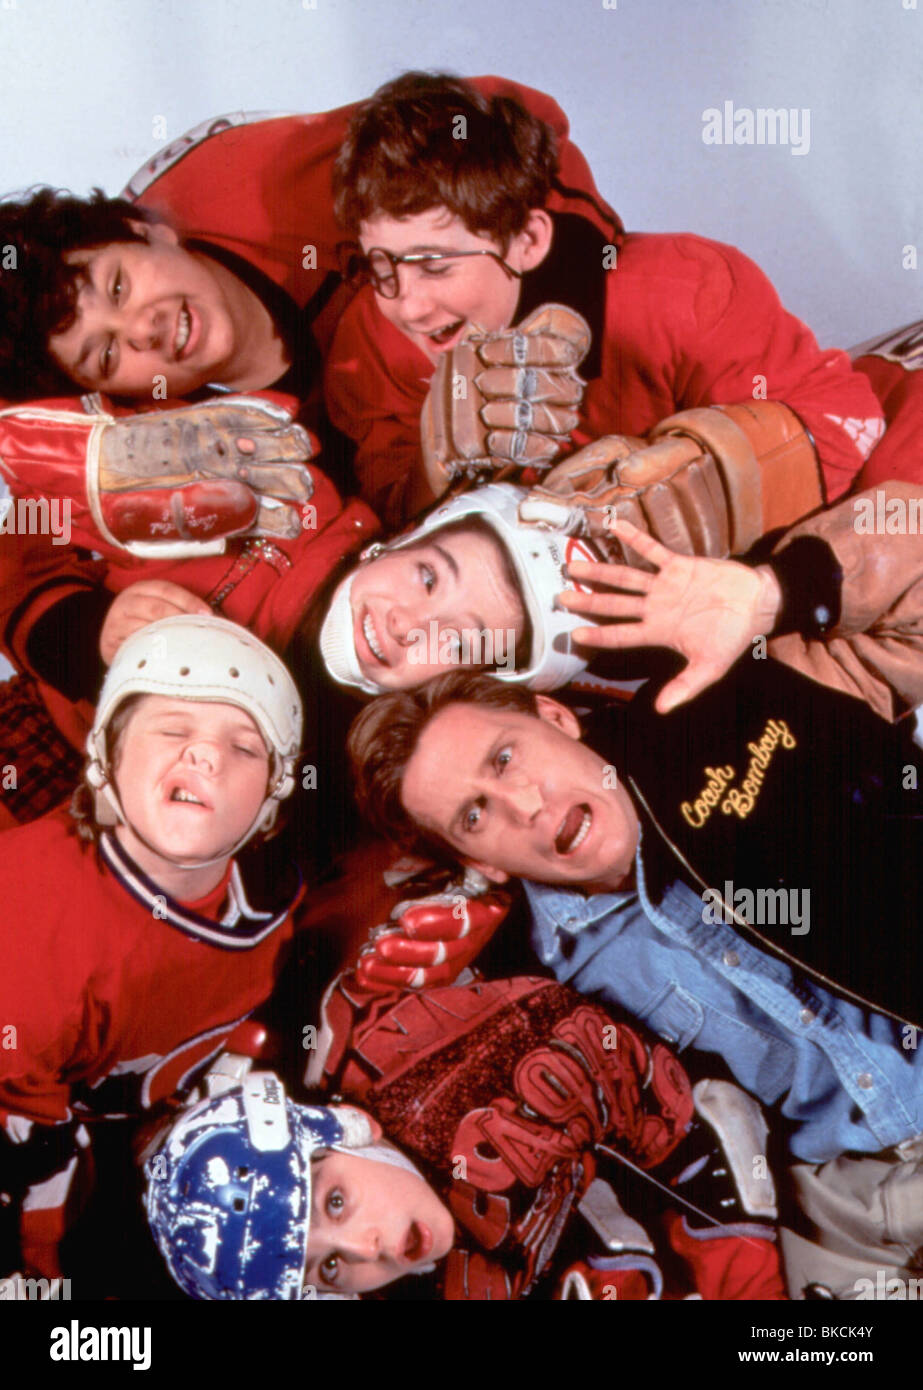 CHAMPIONS (1992) THE MIGHTY DUCKS (ALT) EMILIO ESTEVEZ CHMP 004 - Stock Image